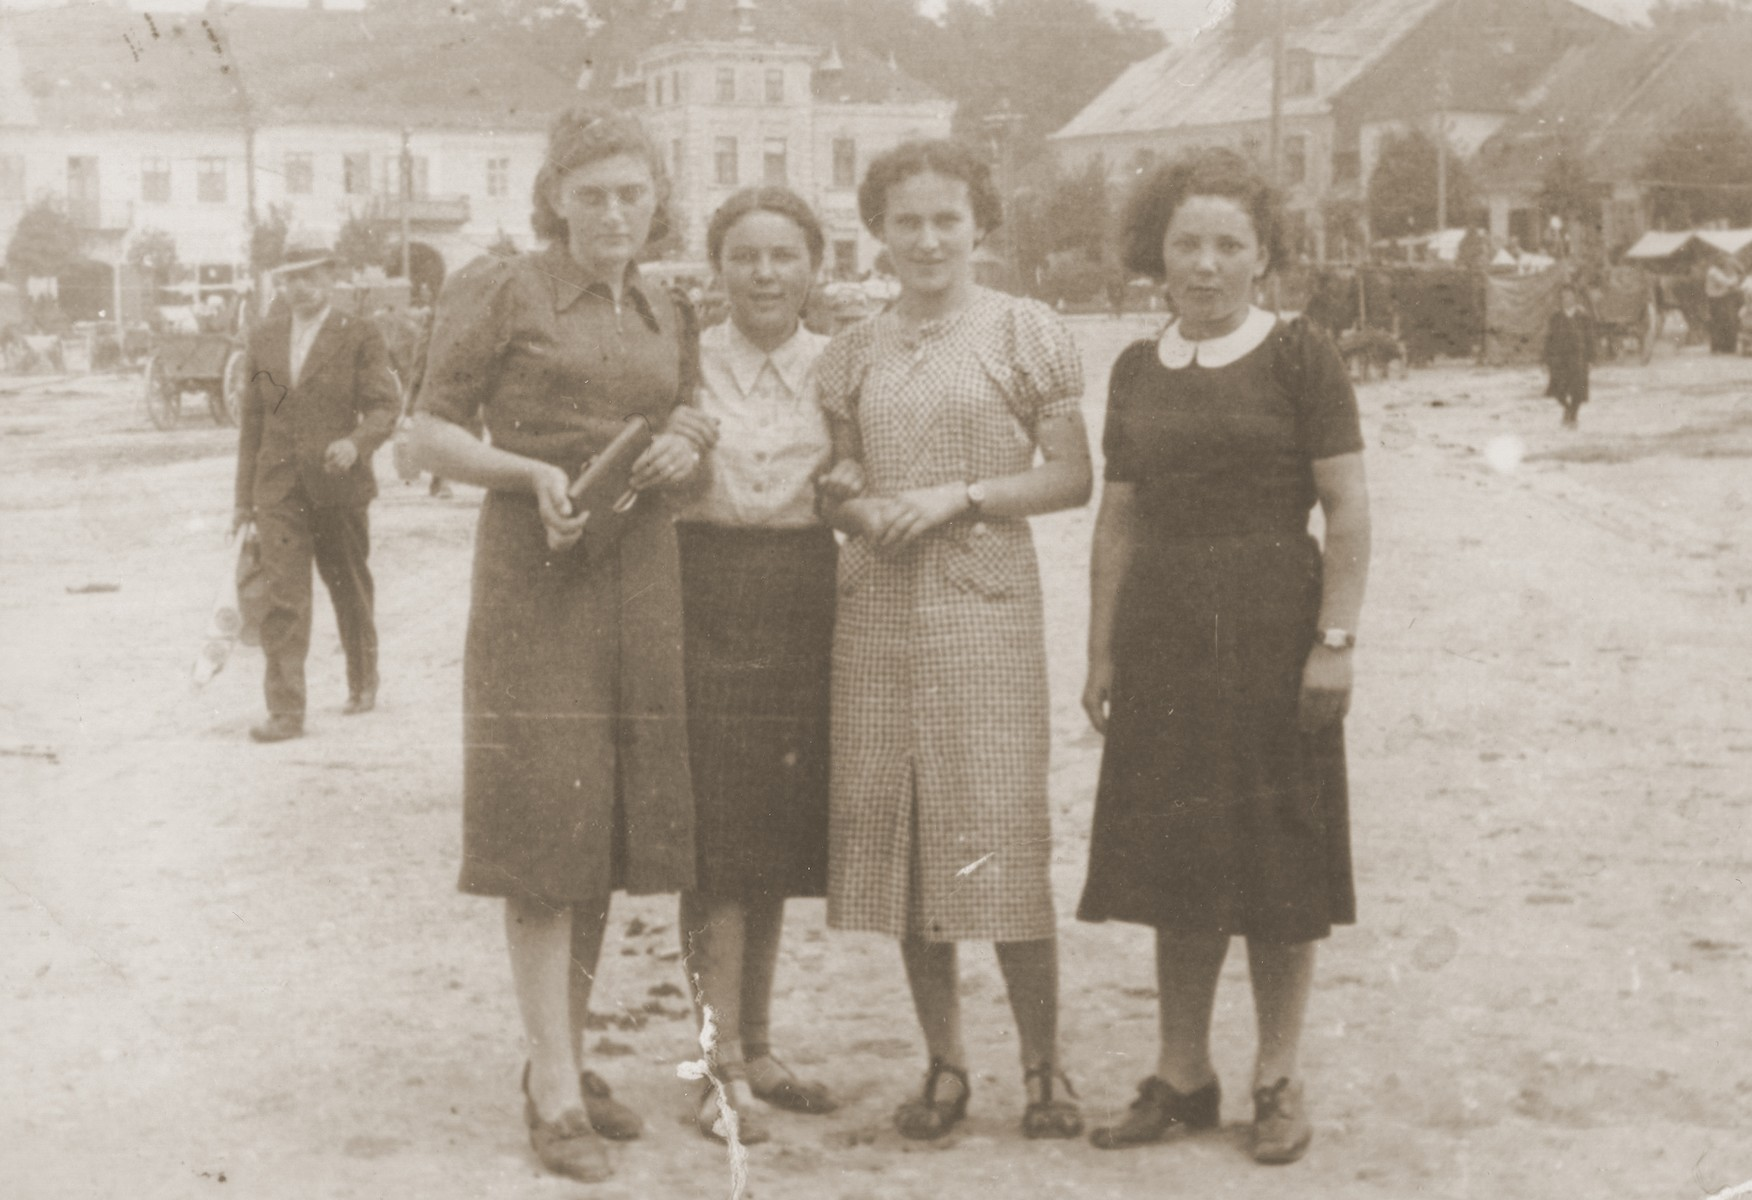 Group portrait of four young Jewish women in a public square in Lancut, Poland.  Pictured from left to right are: Ethel Ringelheim, Sheila Gurfein, Esther Amet and Basia Gurfein.